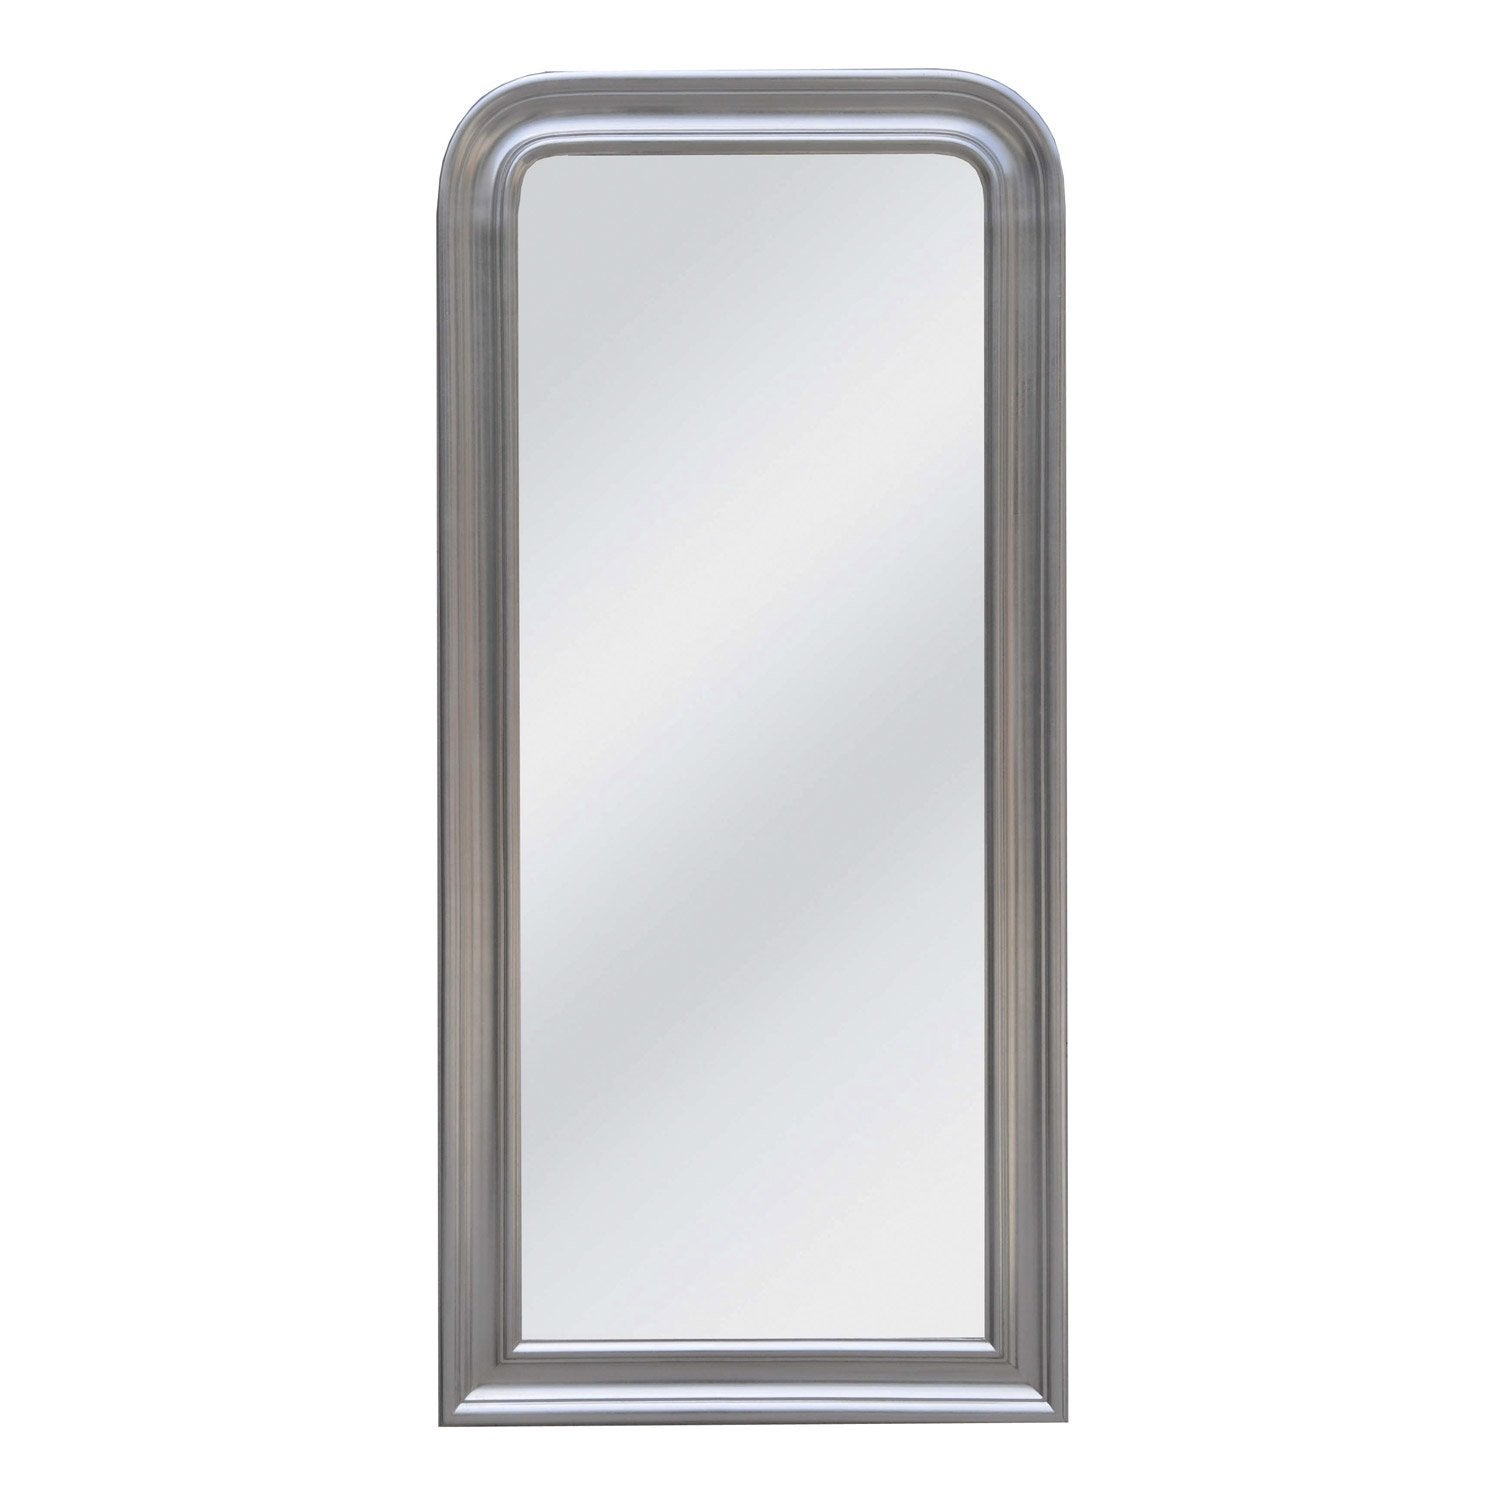 Miroir daventry rectangle argent 70x150 cm leroy merlin - Miroir leroy merlin ...